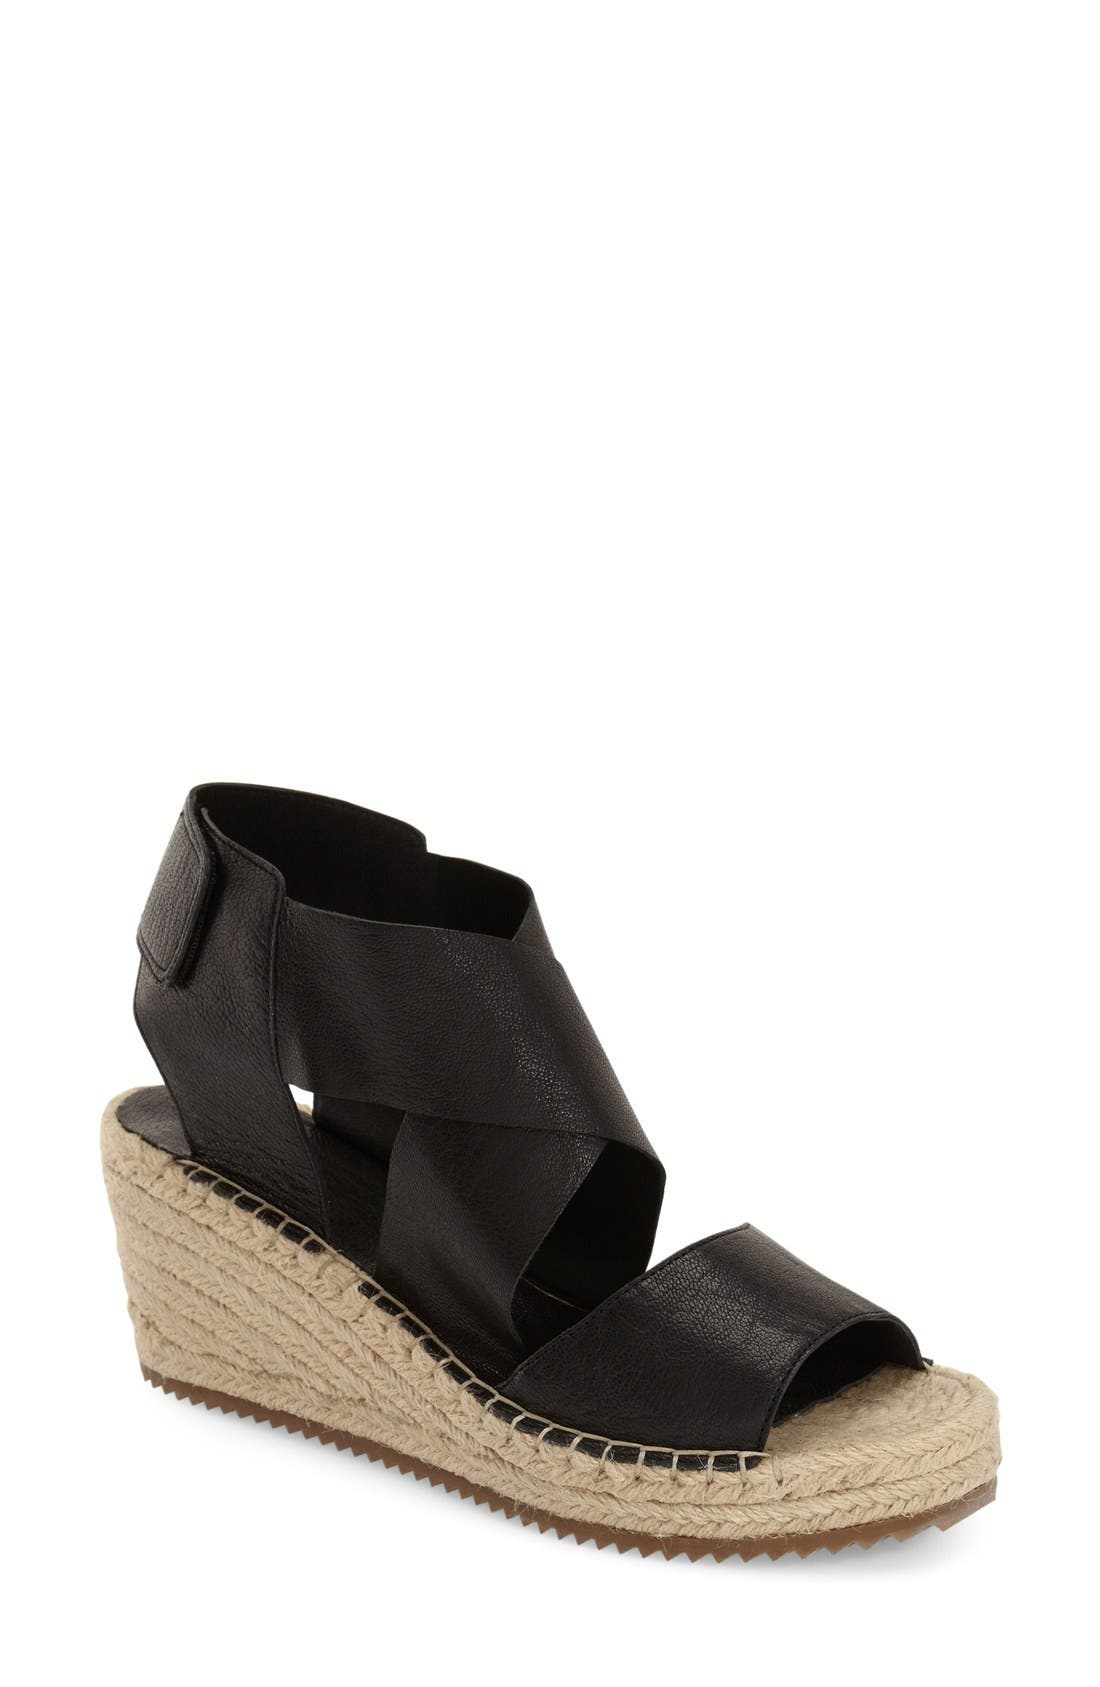 'Willow' Espadrille Wedge Sandal,                         Main,                         color, 001